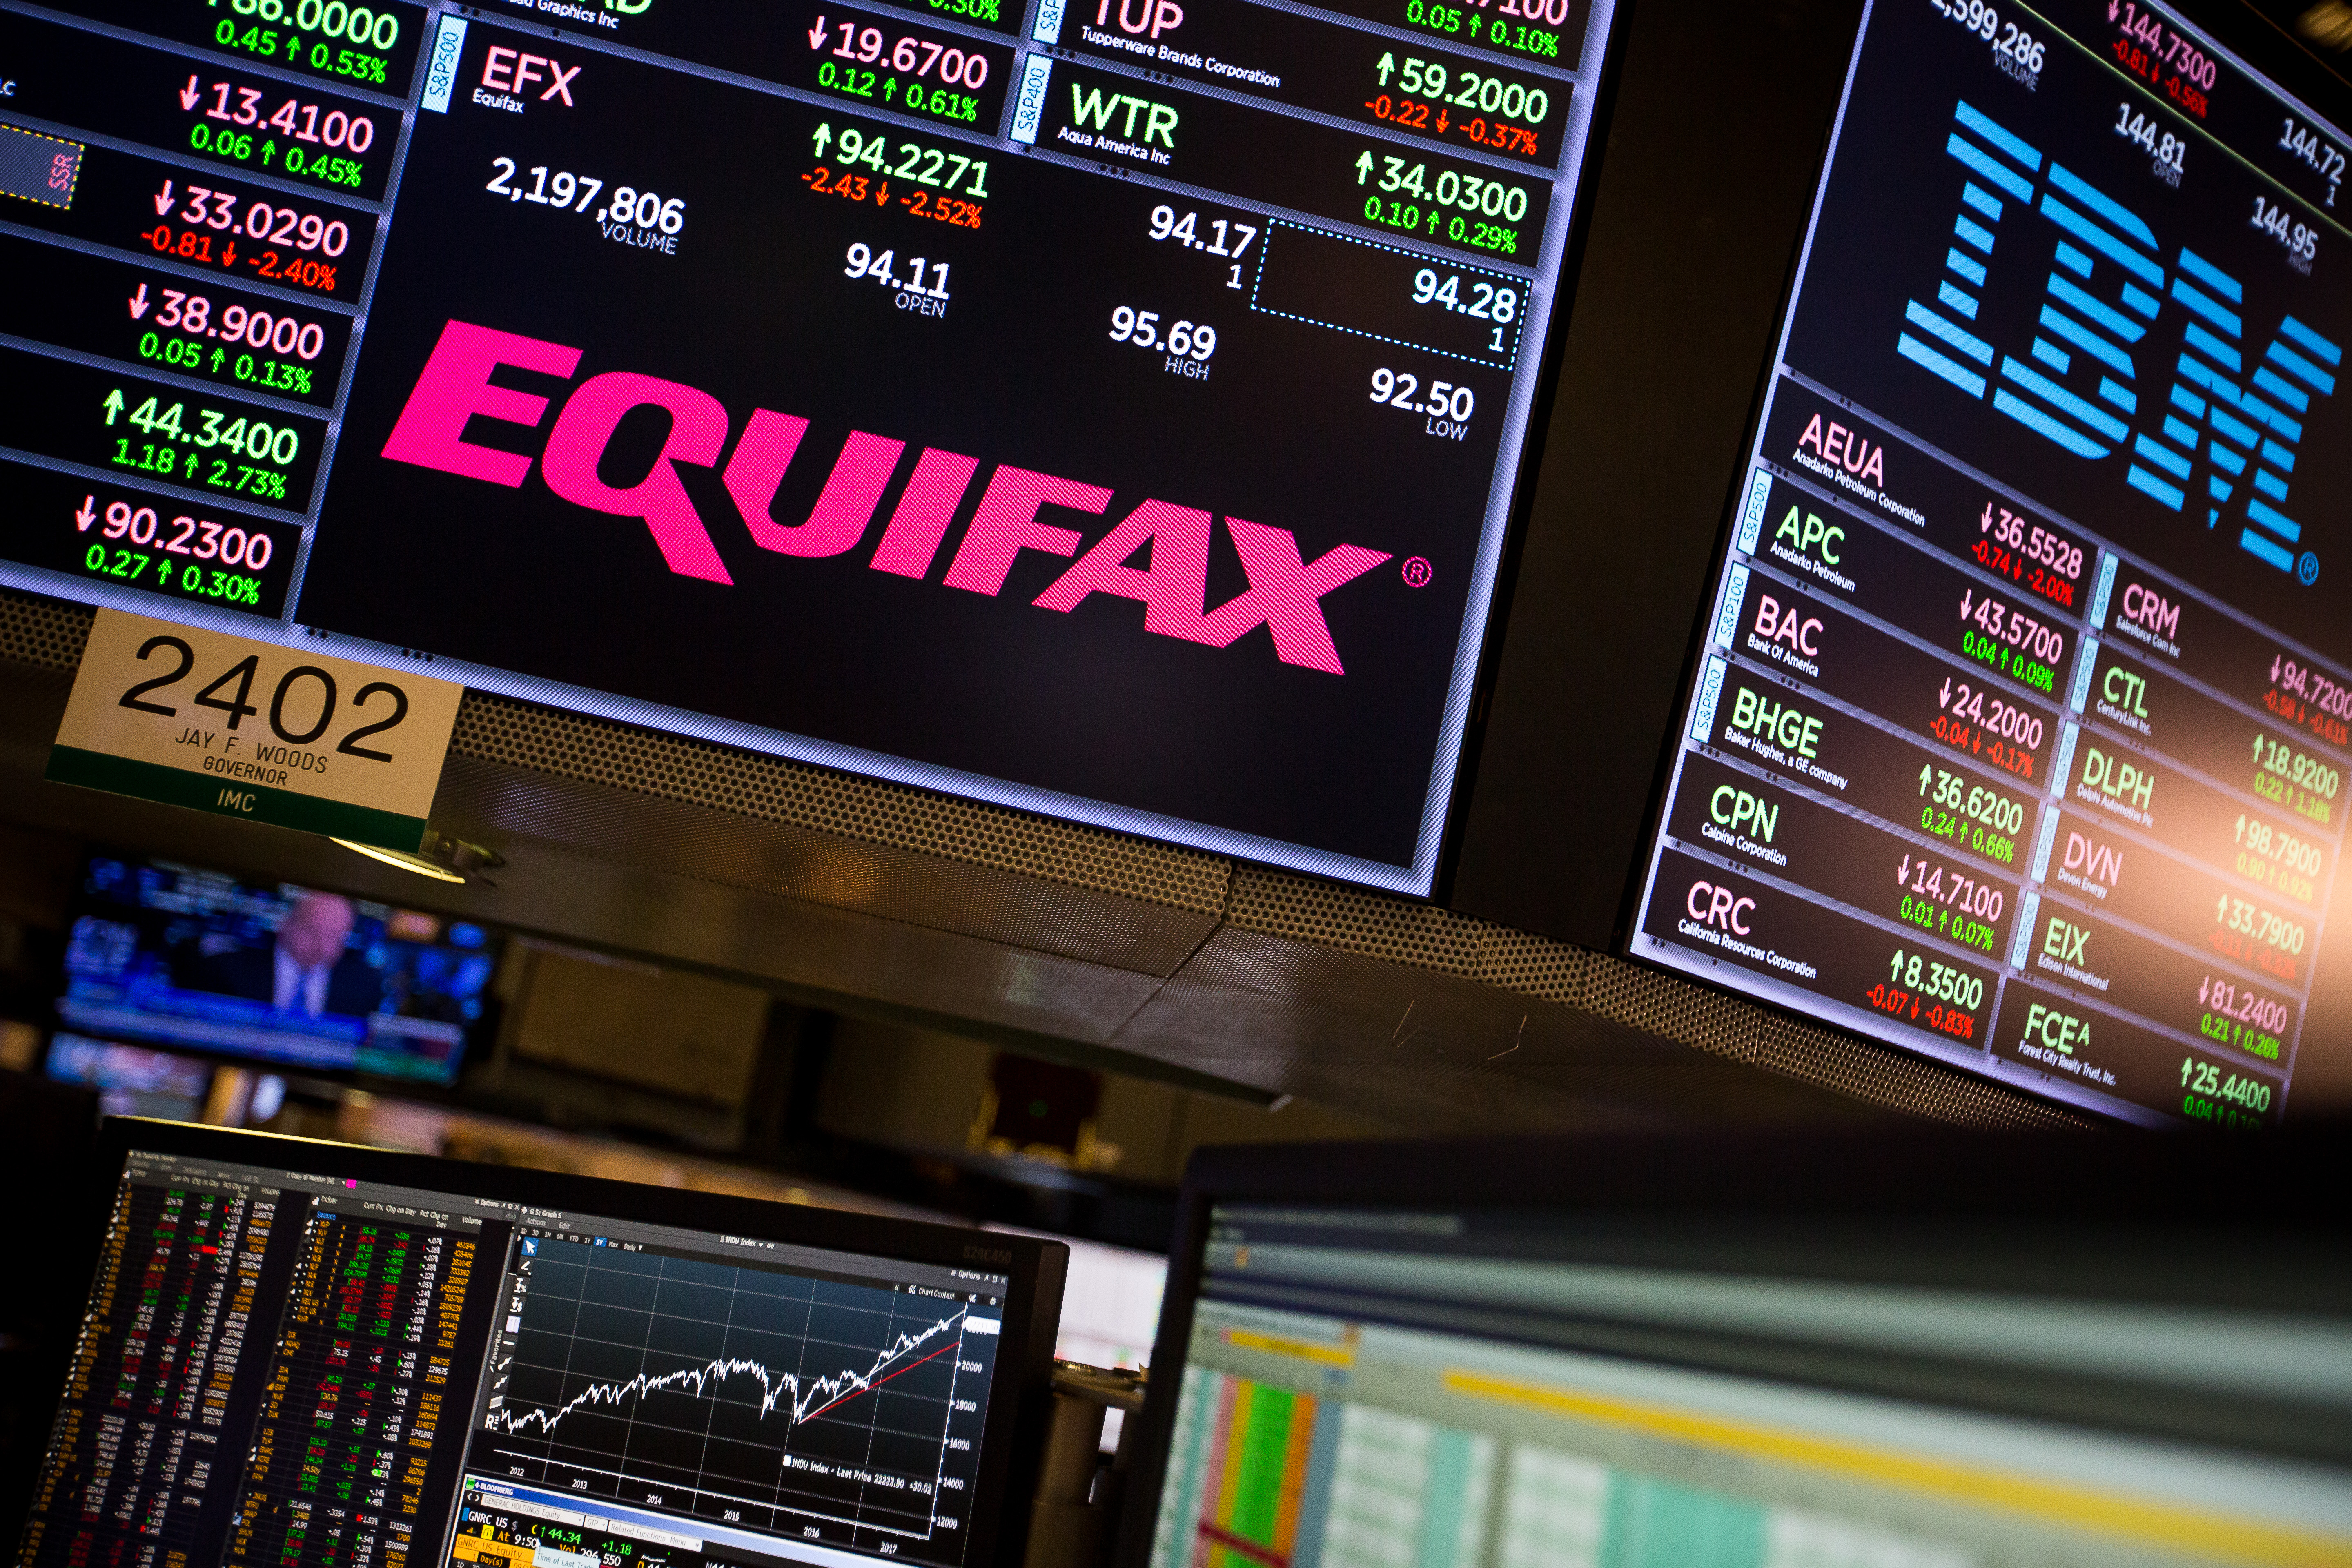 A monitor displays Equifax Inc. signage on the floor of the New York Stock Exchange (NYSE) in New York, Sept. 15, 2017.